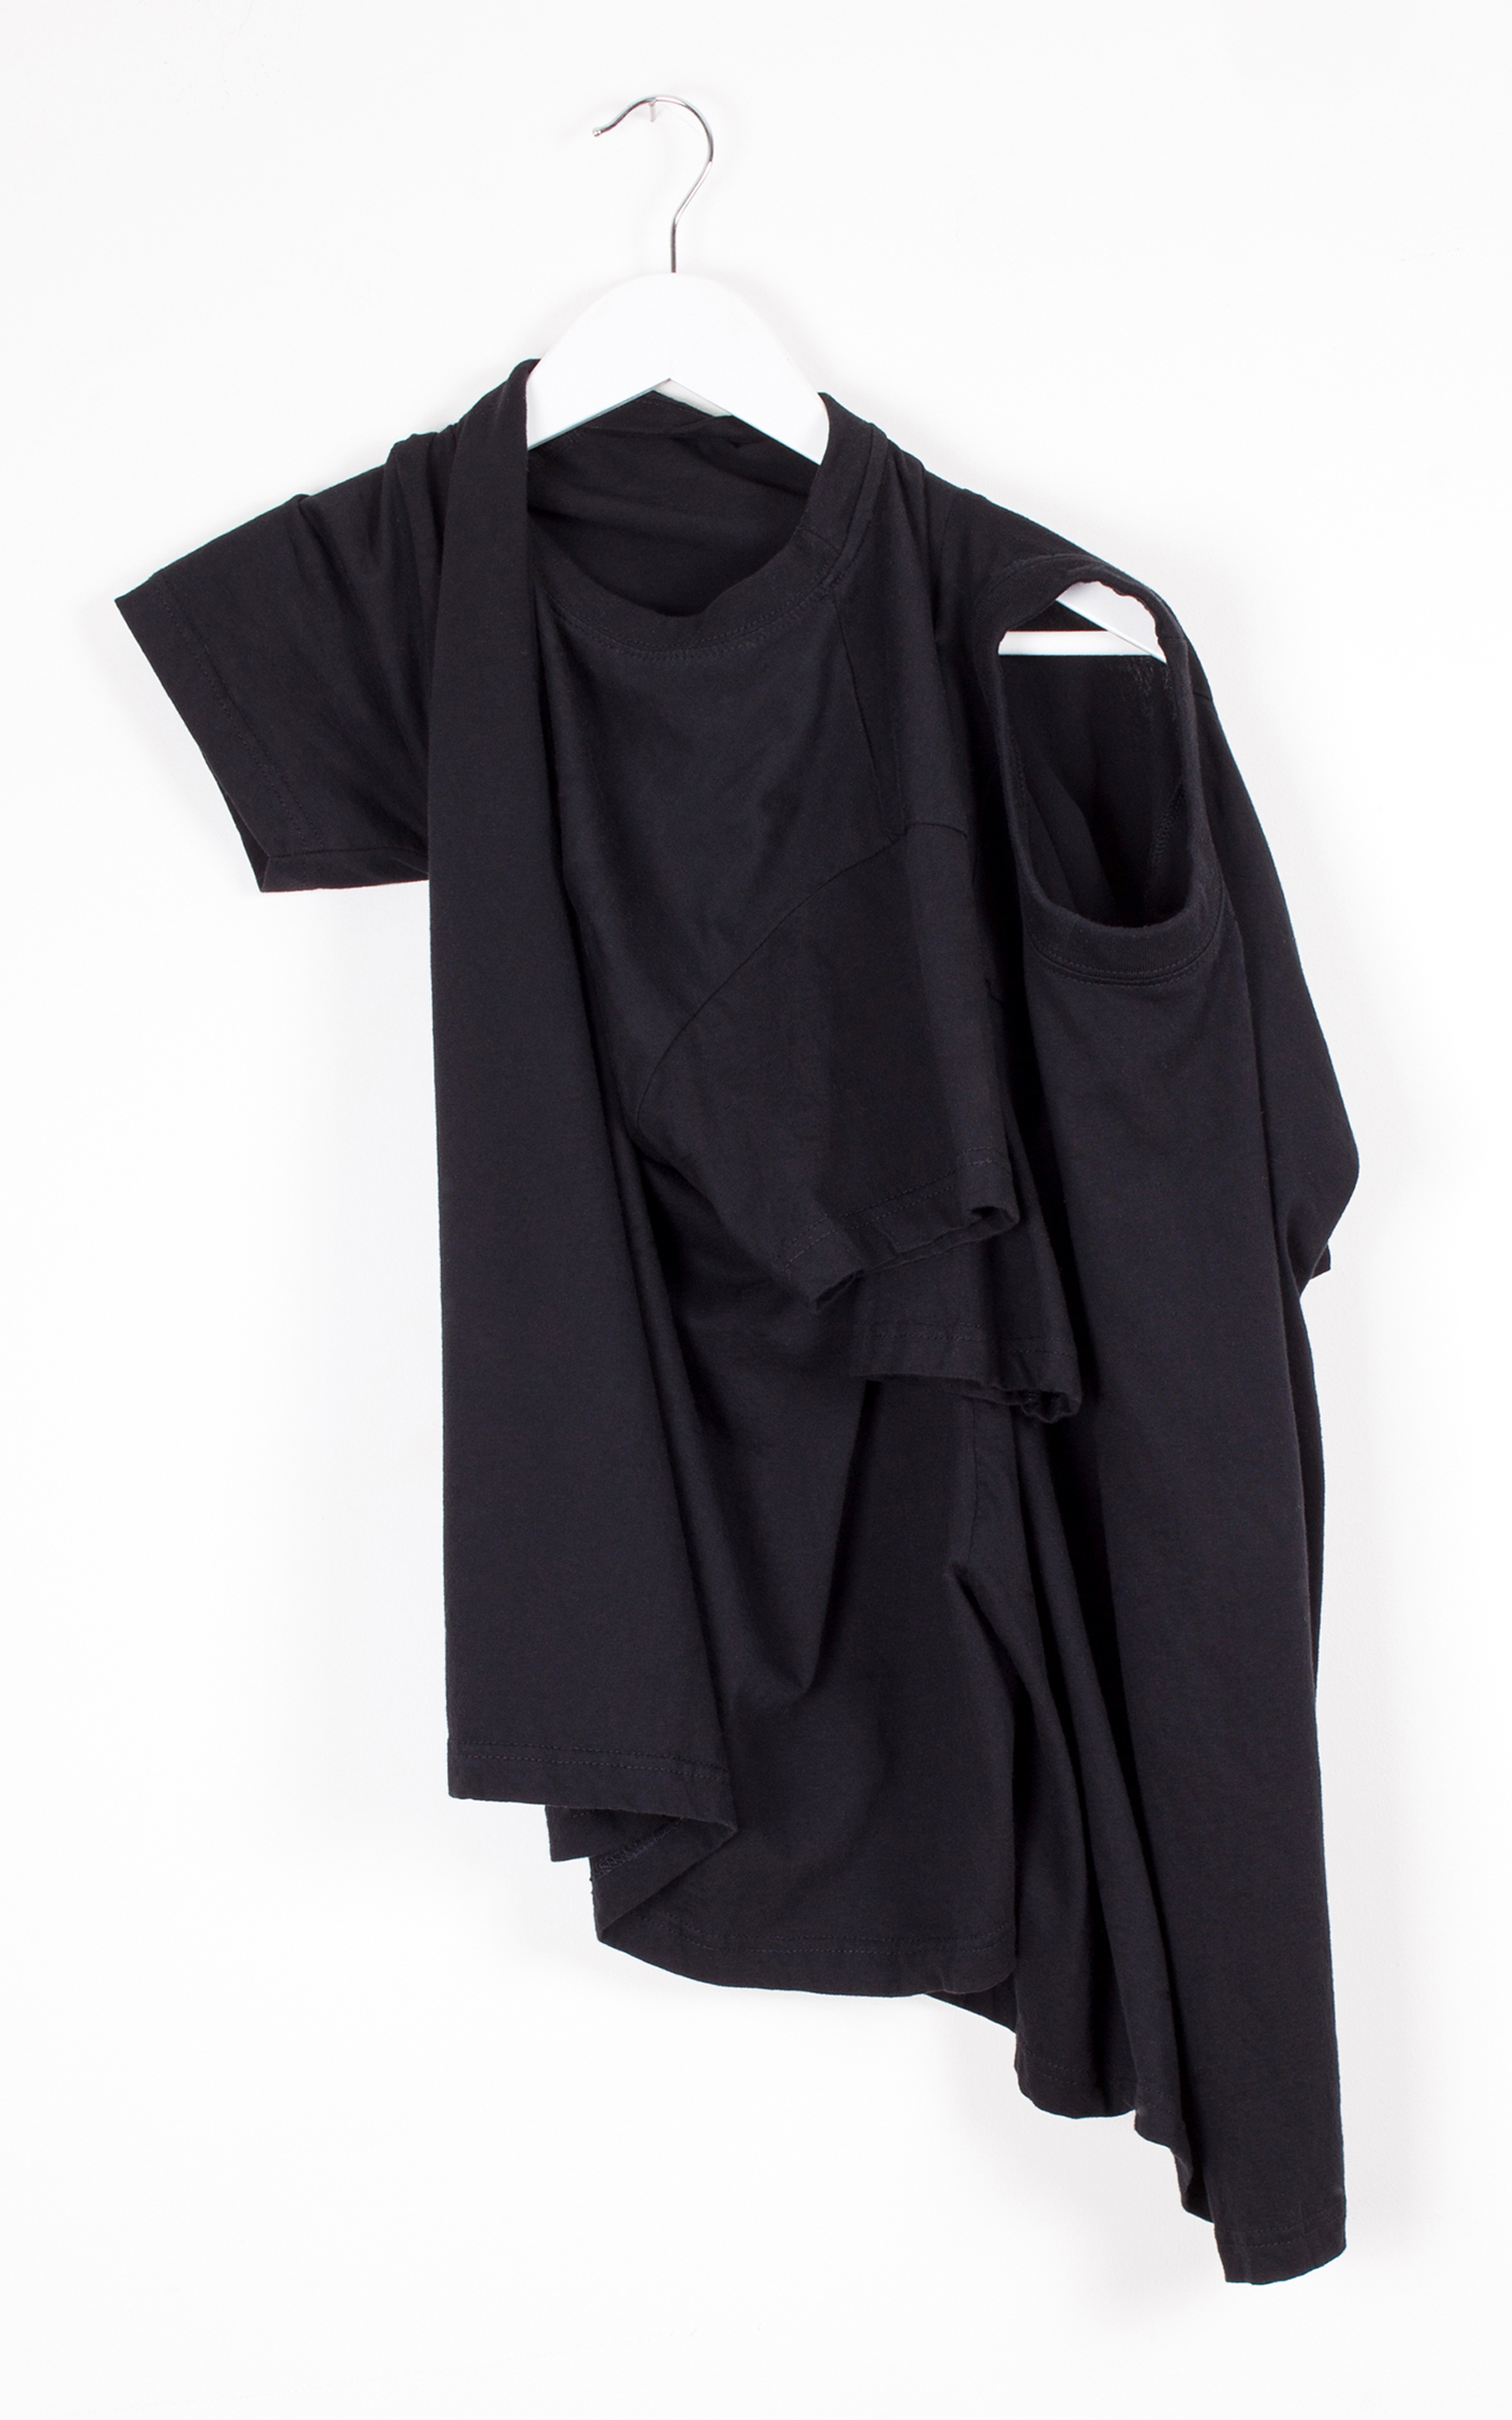 07) Co-dependent T/ Black   Two T shirts cut together  so they cannot be separated,  only rotated for alternative use of head and arm hole, to create different shapes.